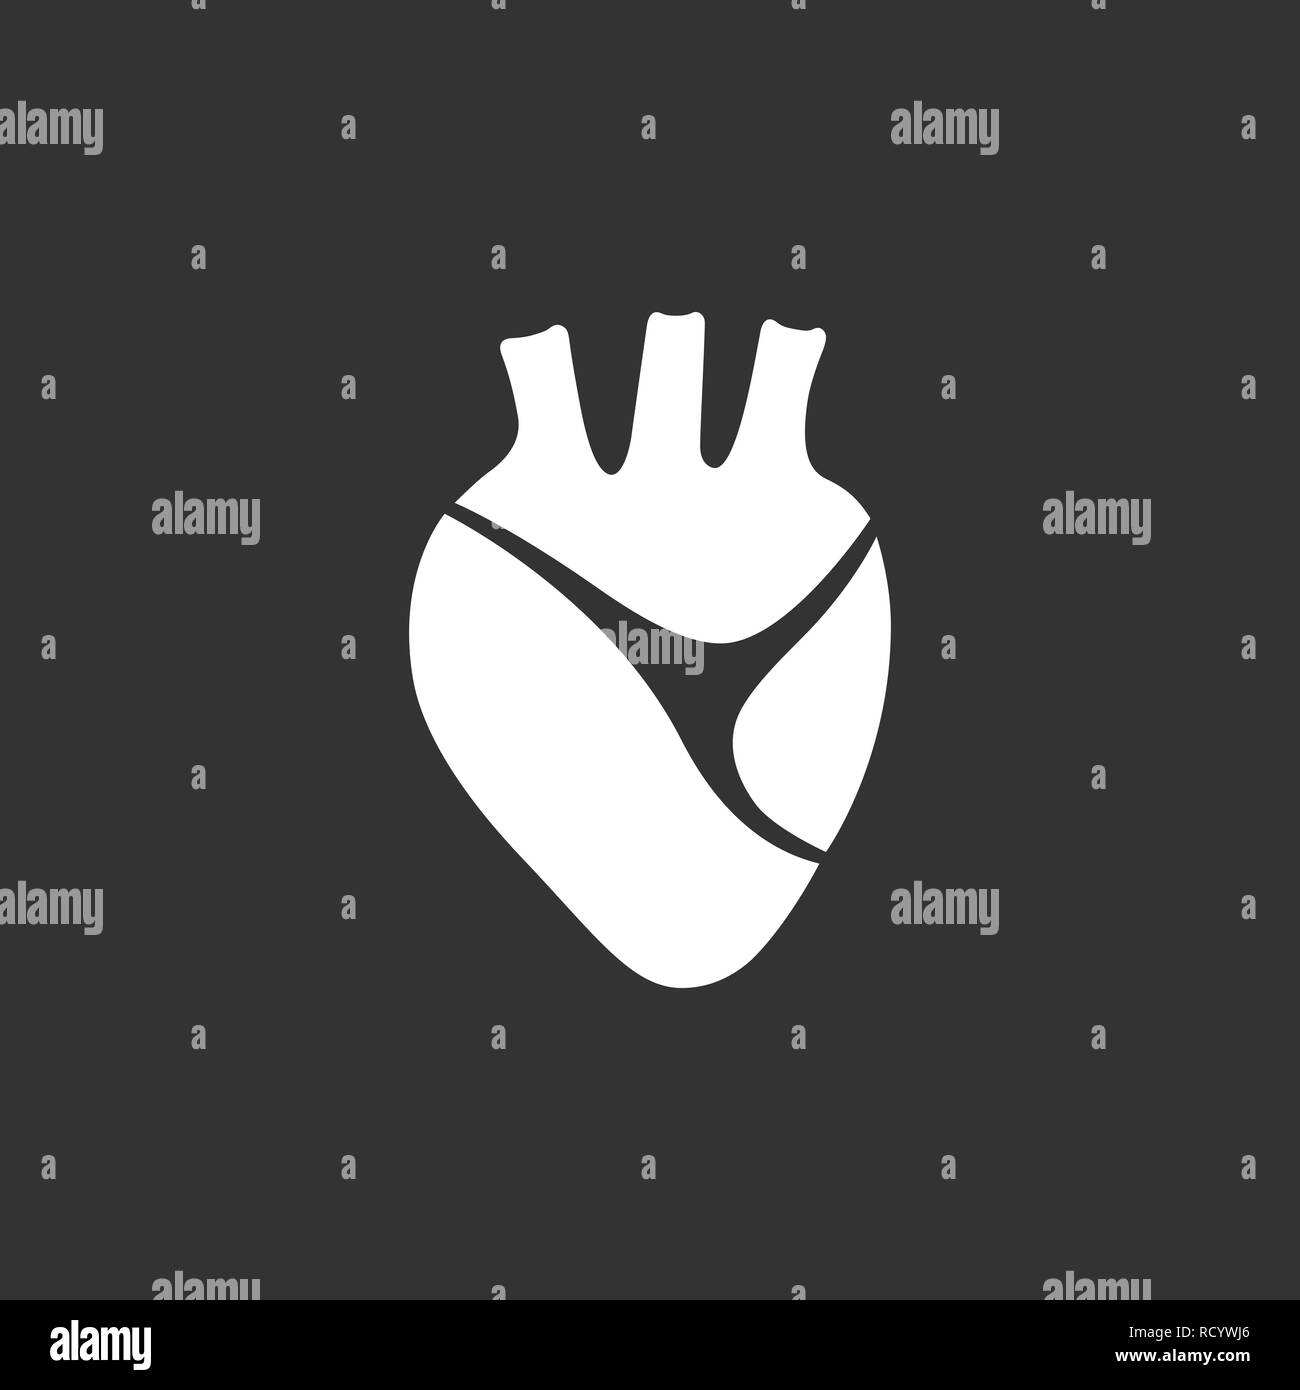 Human Heart Icon On A Black Background Vector Illustration Stock Vector Image Art Alamy Download 1,552 free human icons. https www alamy com human heart icon on a black background vector illustration image231723470 html